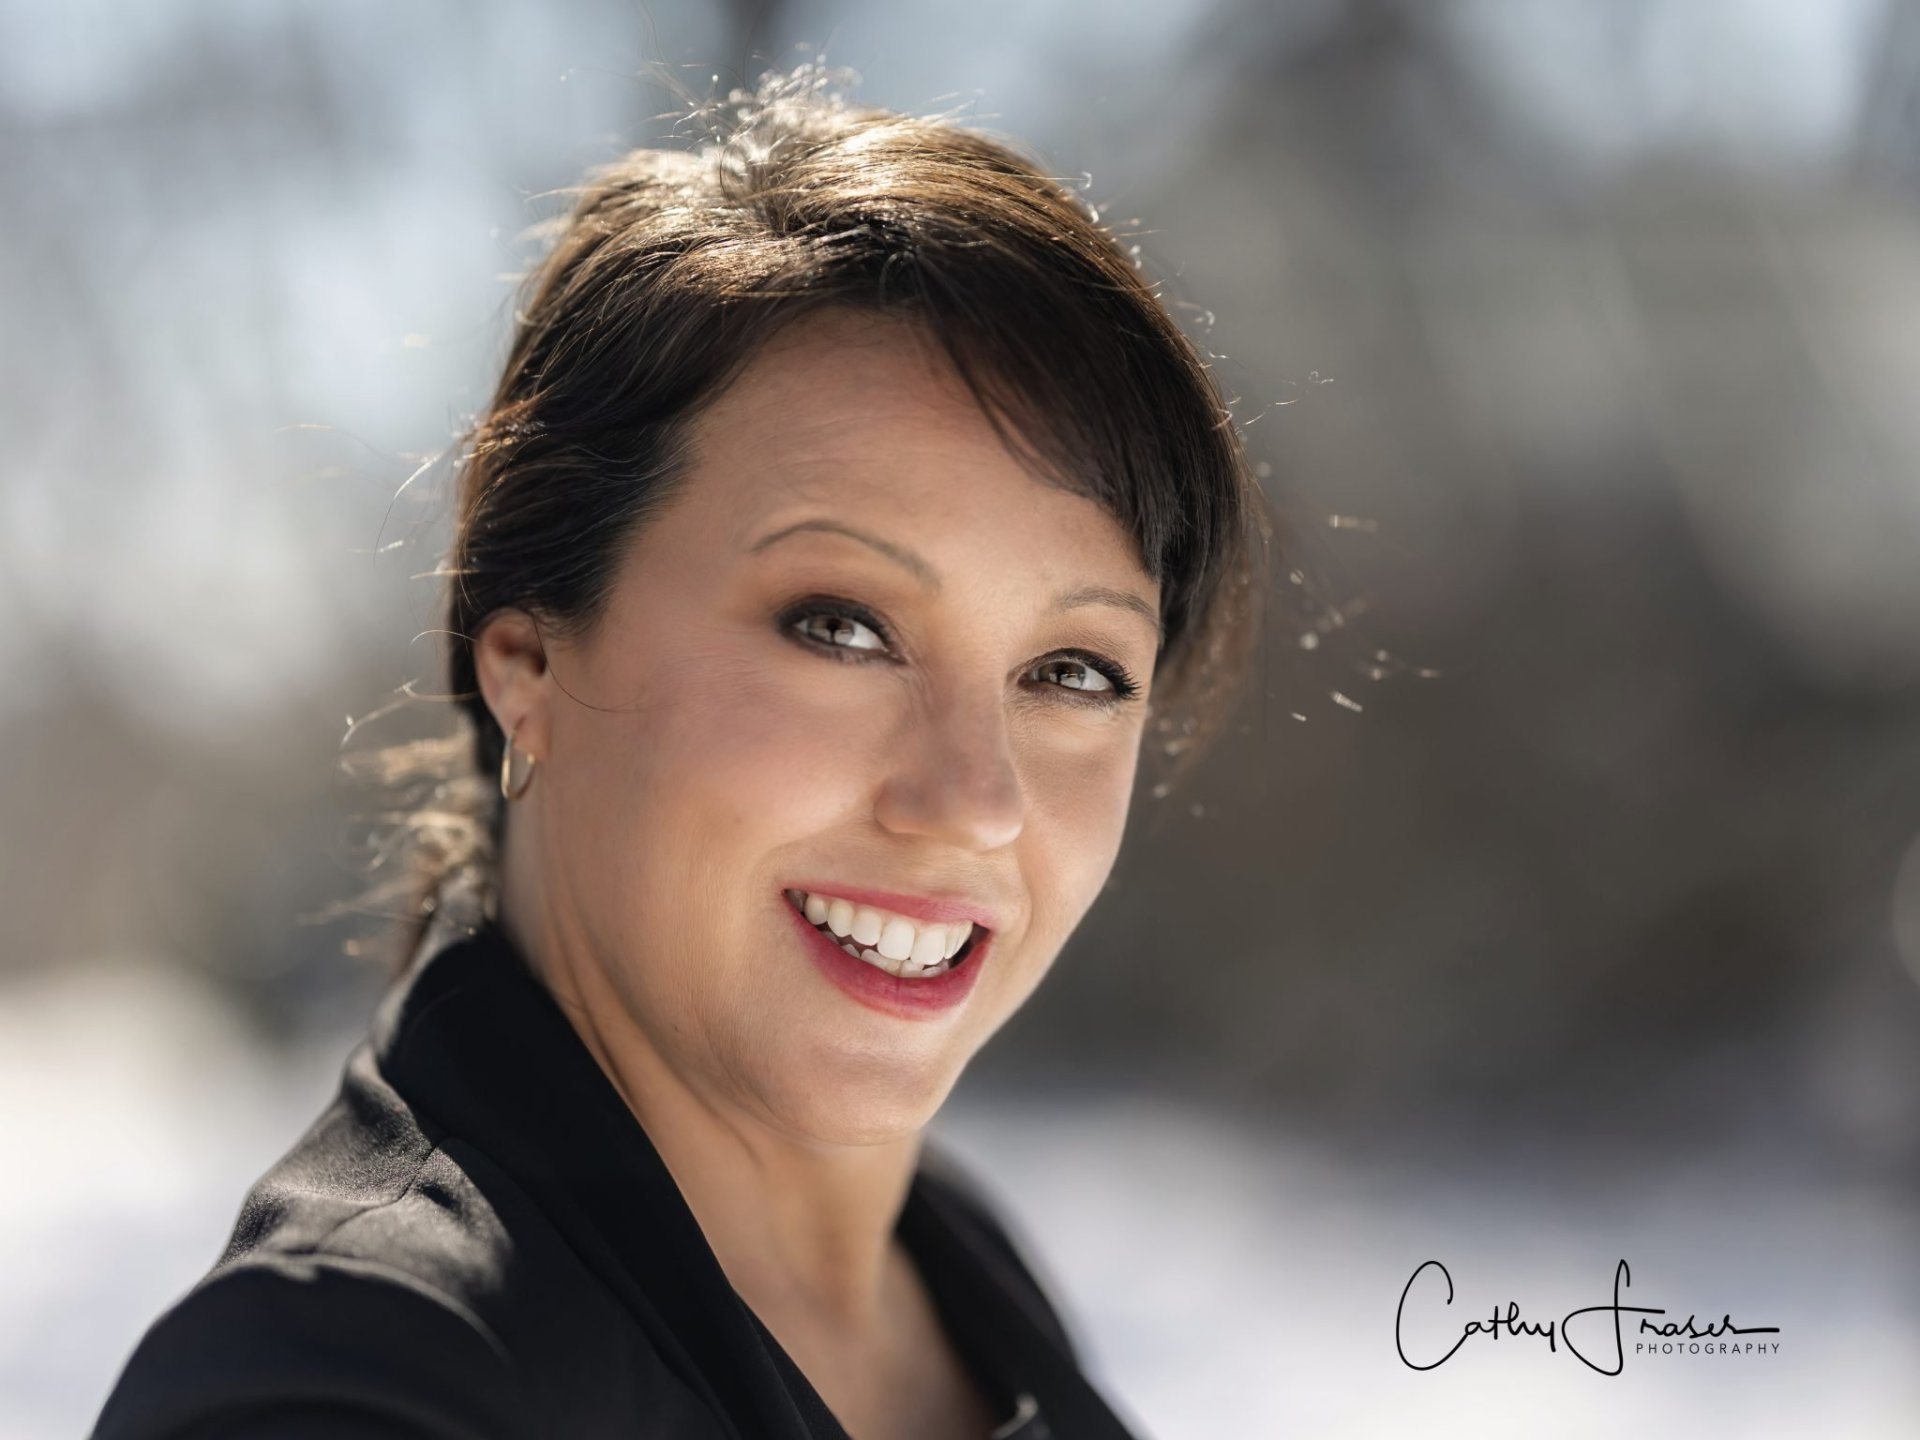 boss lady, female CEO, women in business, shot of beautiful lady with greenery around her, lamberton conservatory, rochester ny, professional headshots, professional photographer, brunette beauty, highland park, fingerlakes region, lifestyle photos, portraits, natural light portraits